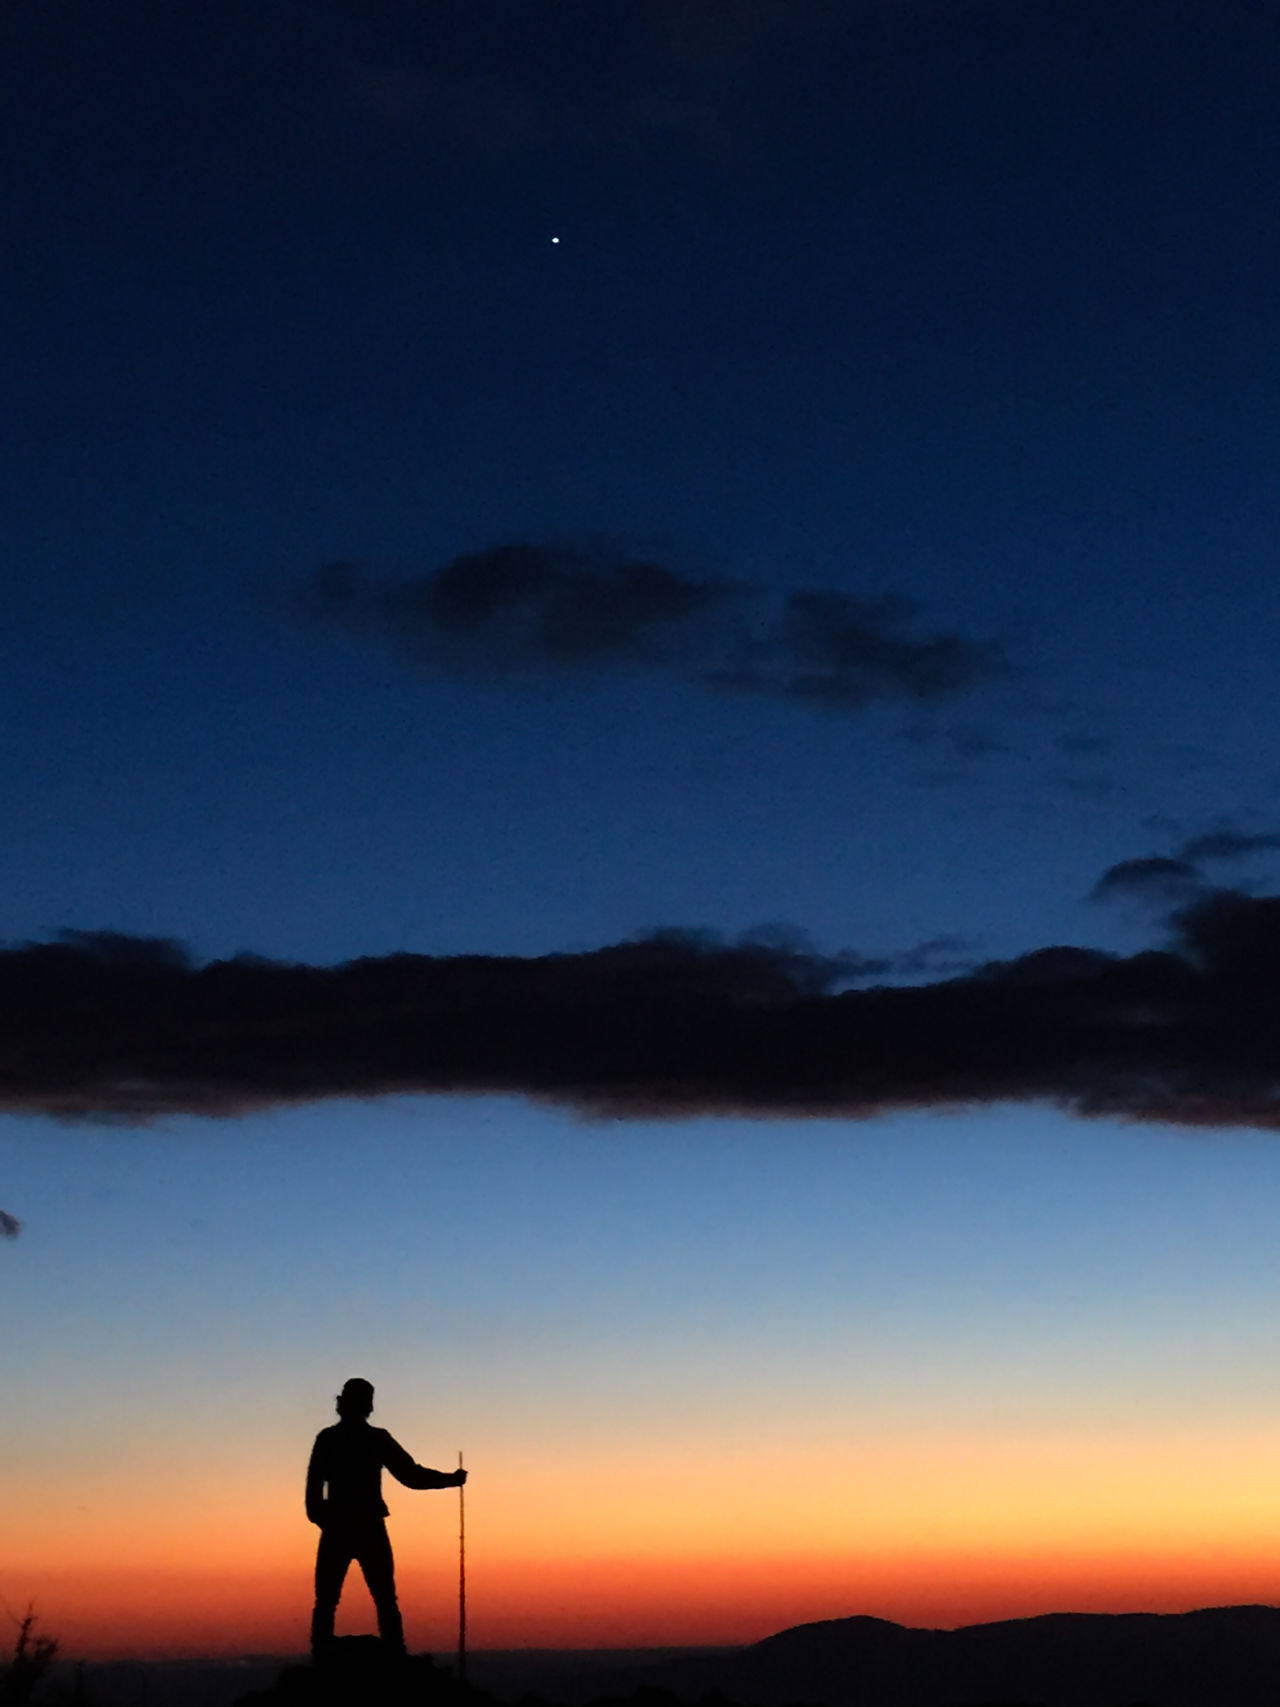 Beauty In Nature Camera - Photographic Equipment Full Length Leisure Activity Lifestyles Men Nature Night One Man Only One Person Outdoors People Real People Scenics Silhouette Sky Standing Sunset Tranquil Scene Tranquility Tree